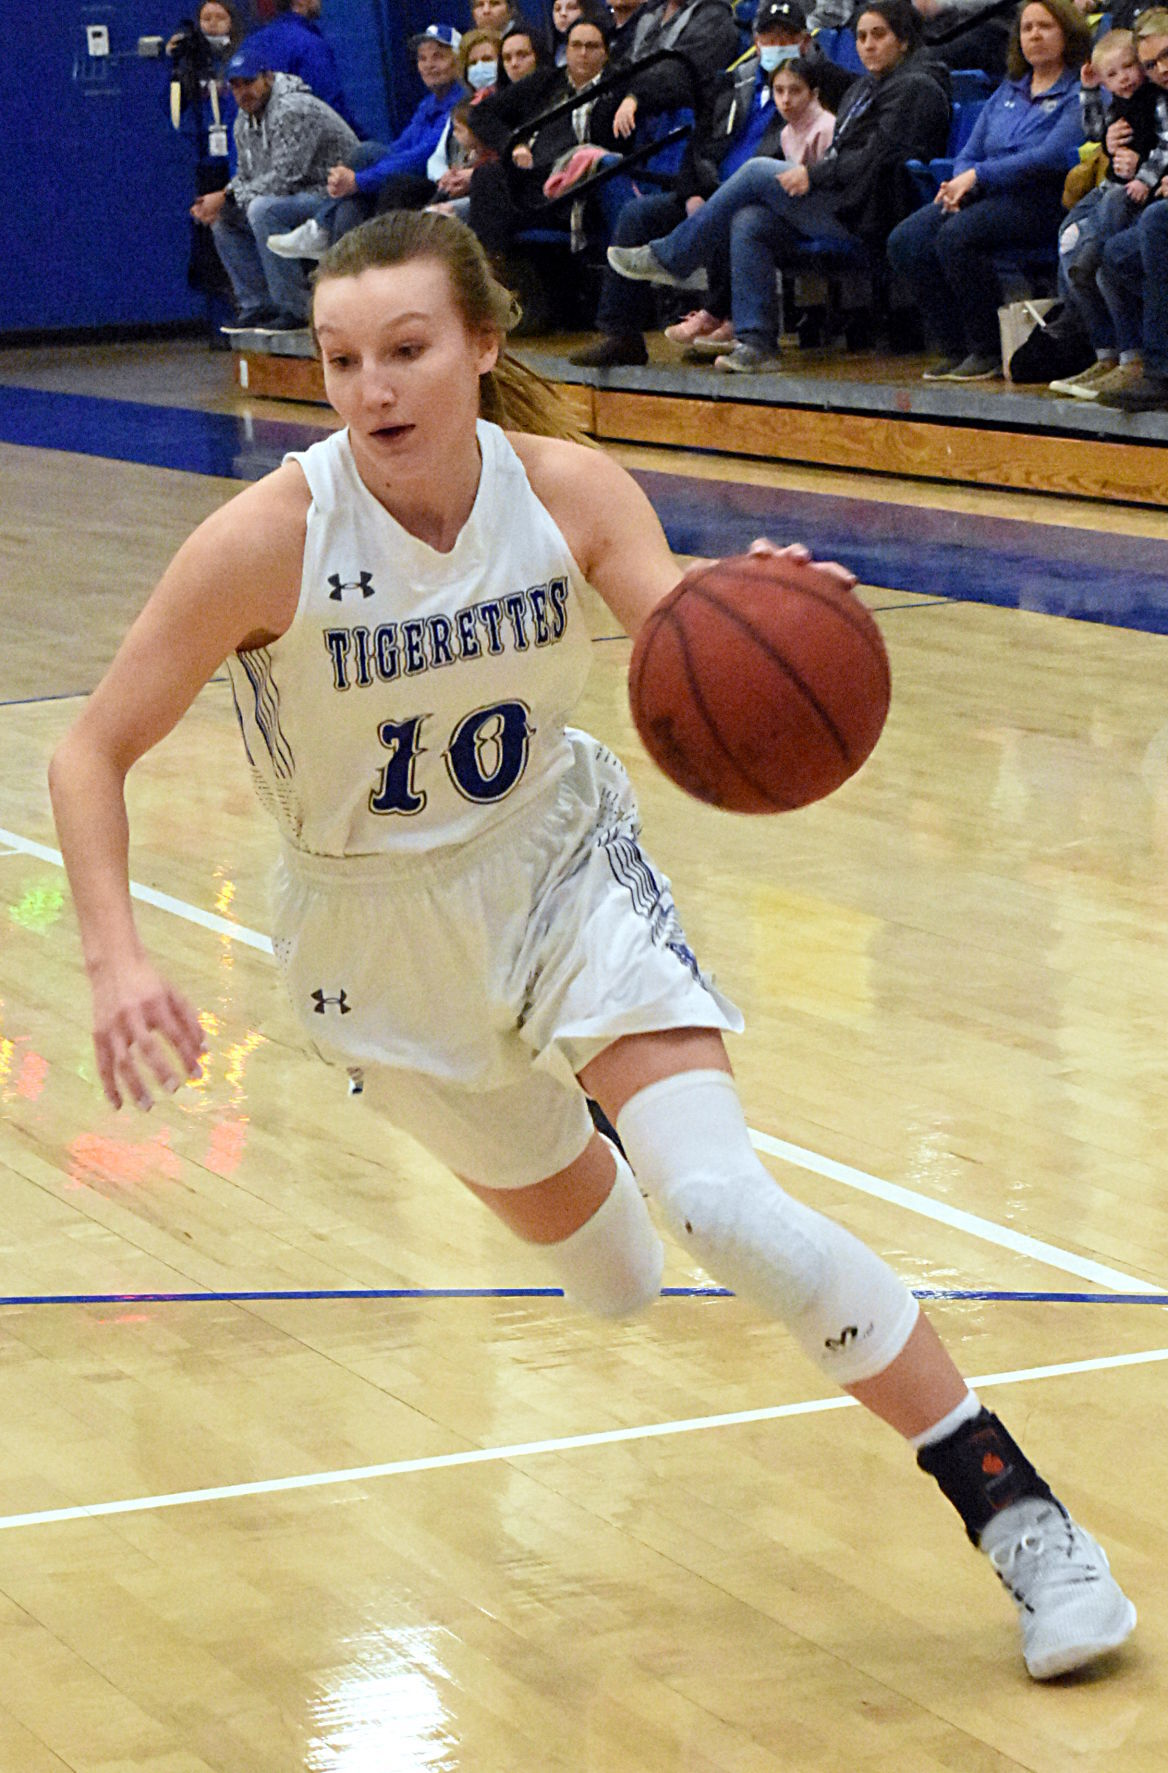 GREGORY NAMED MISS BASKETBALL FINALIST PHOTO 2